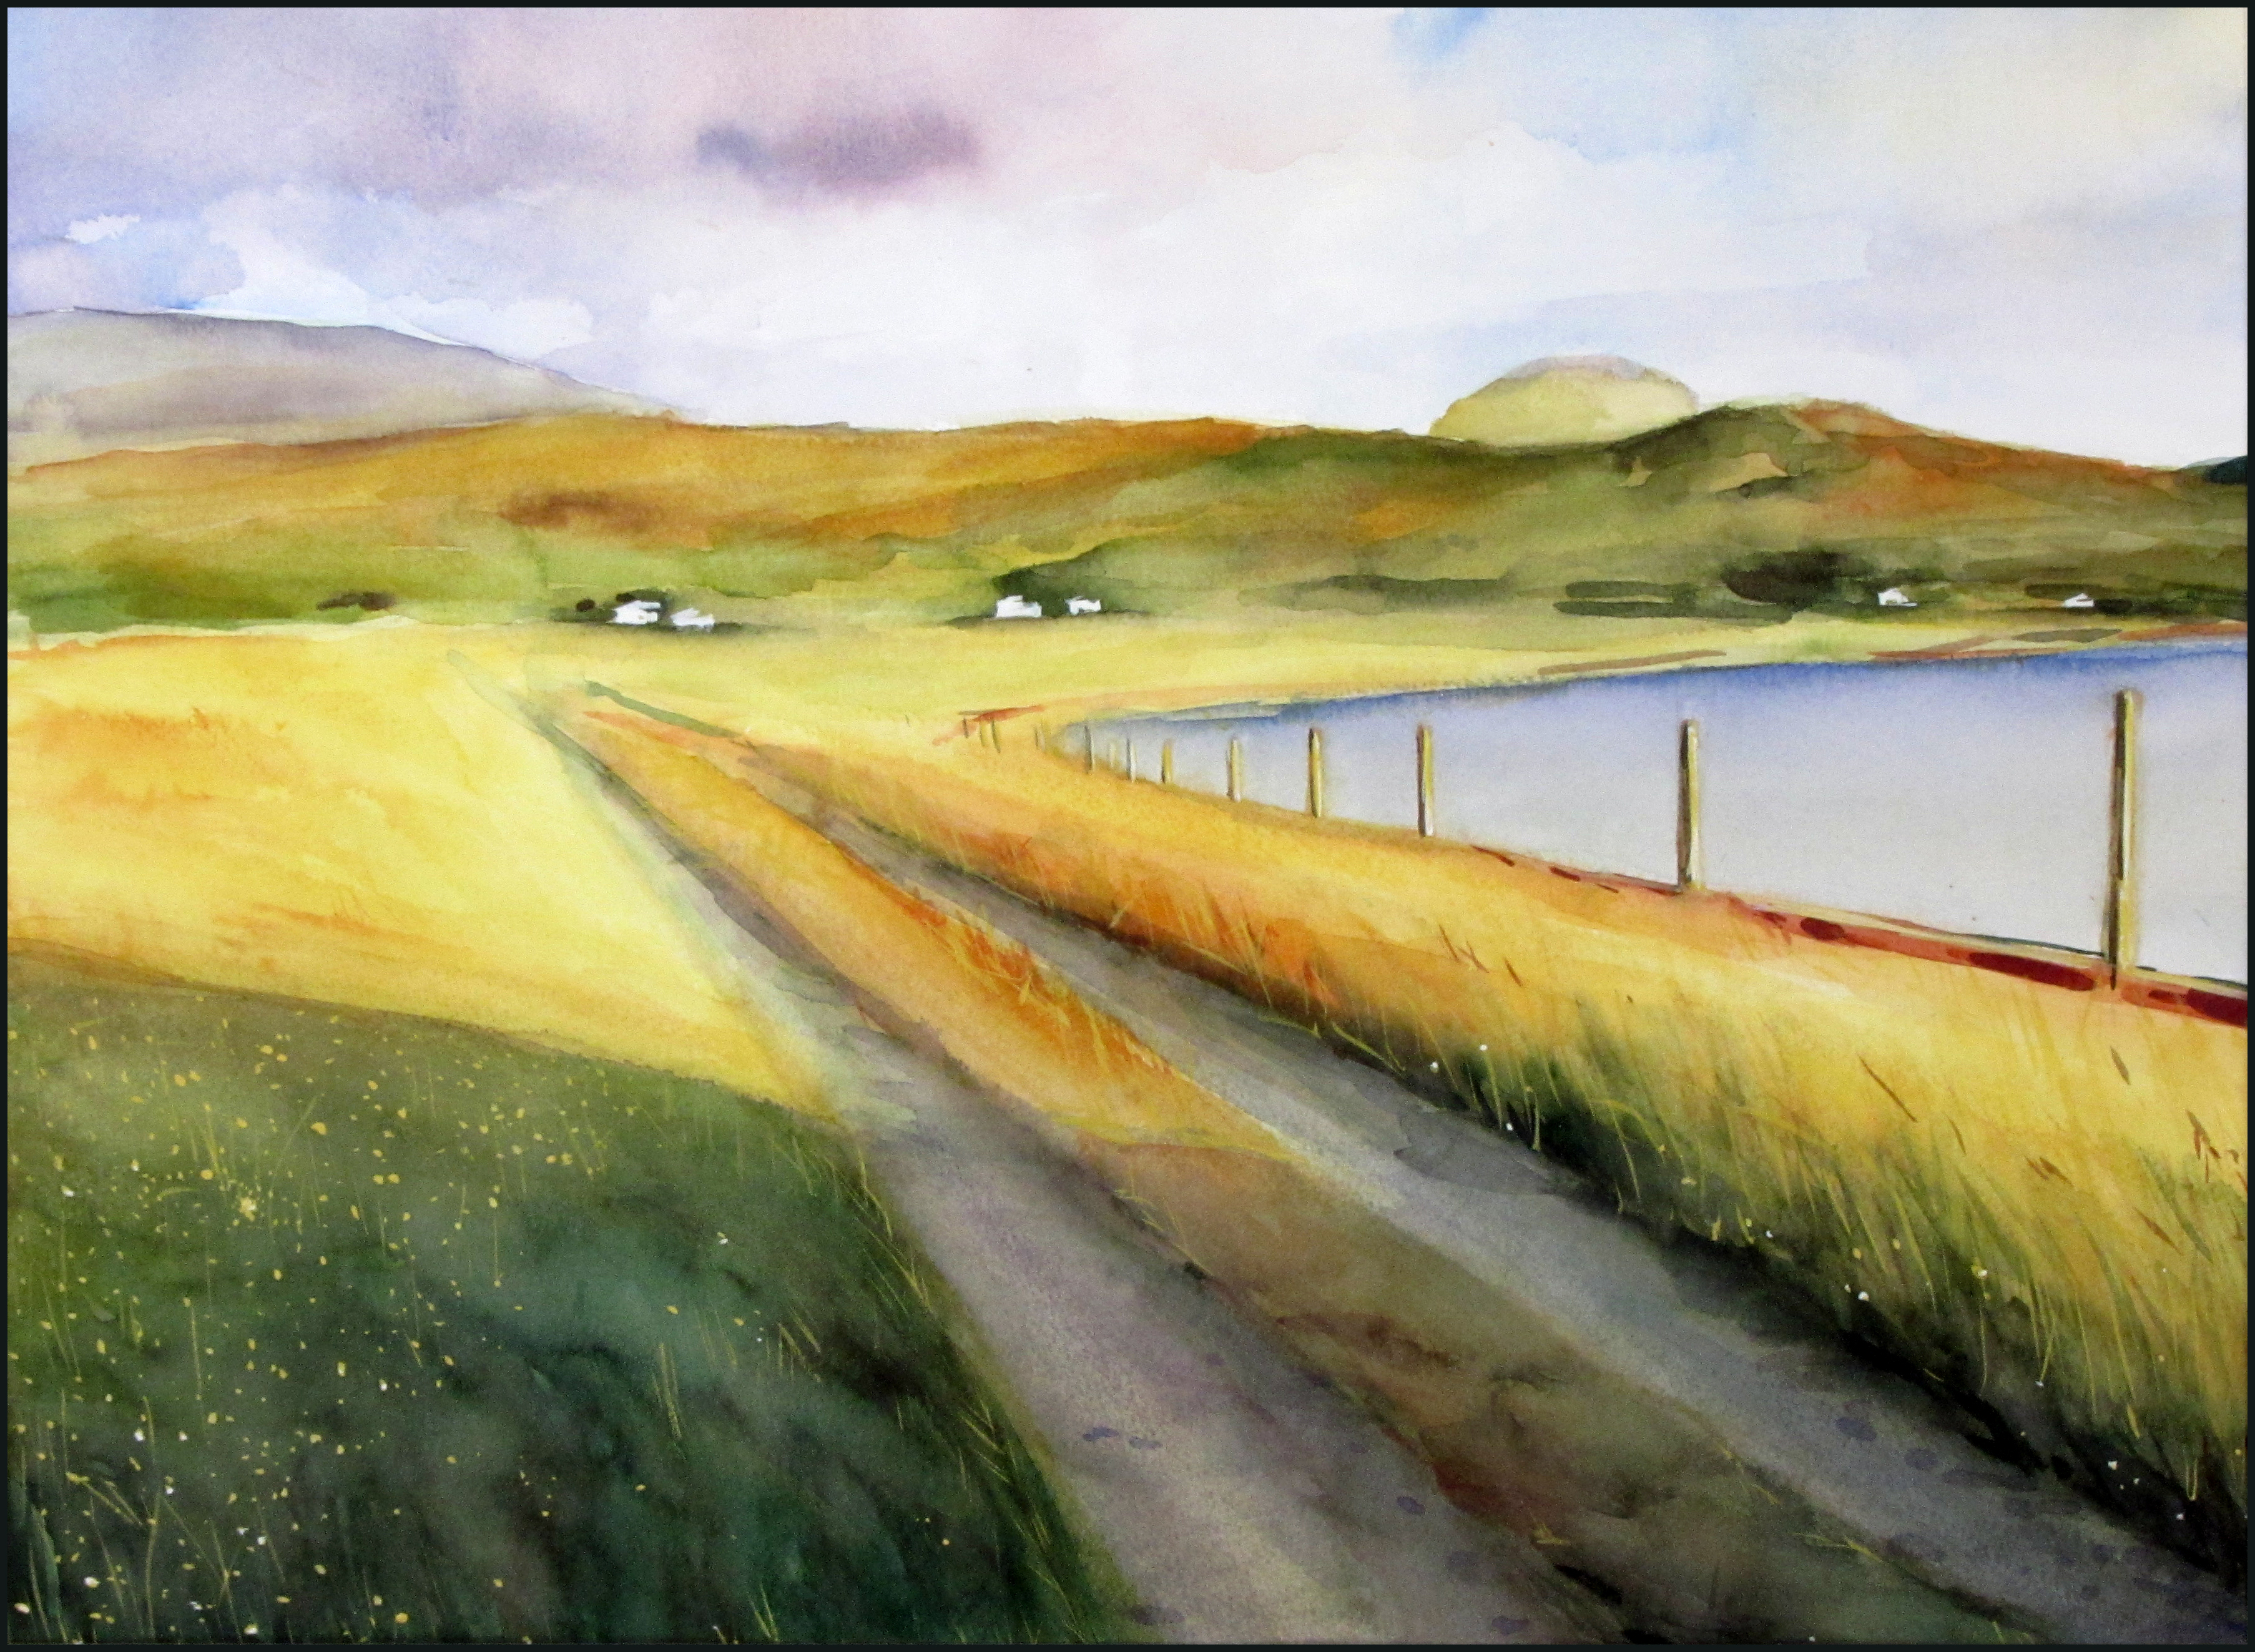 CUIL BAY 73.5 X 59